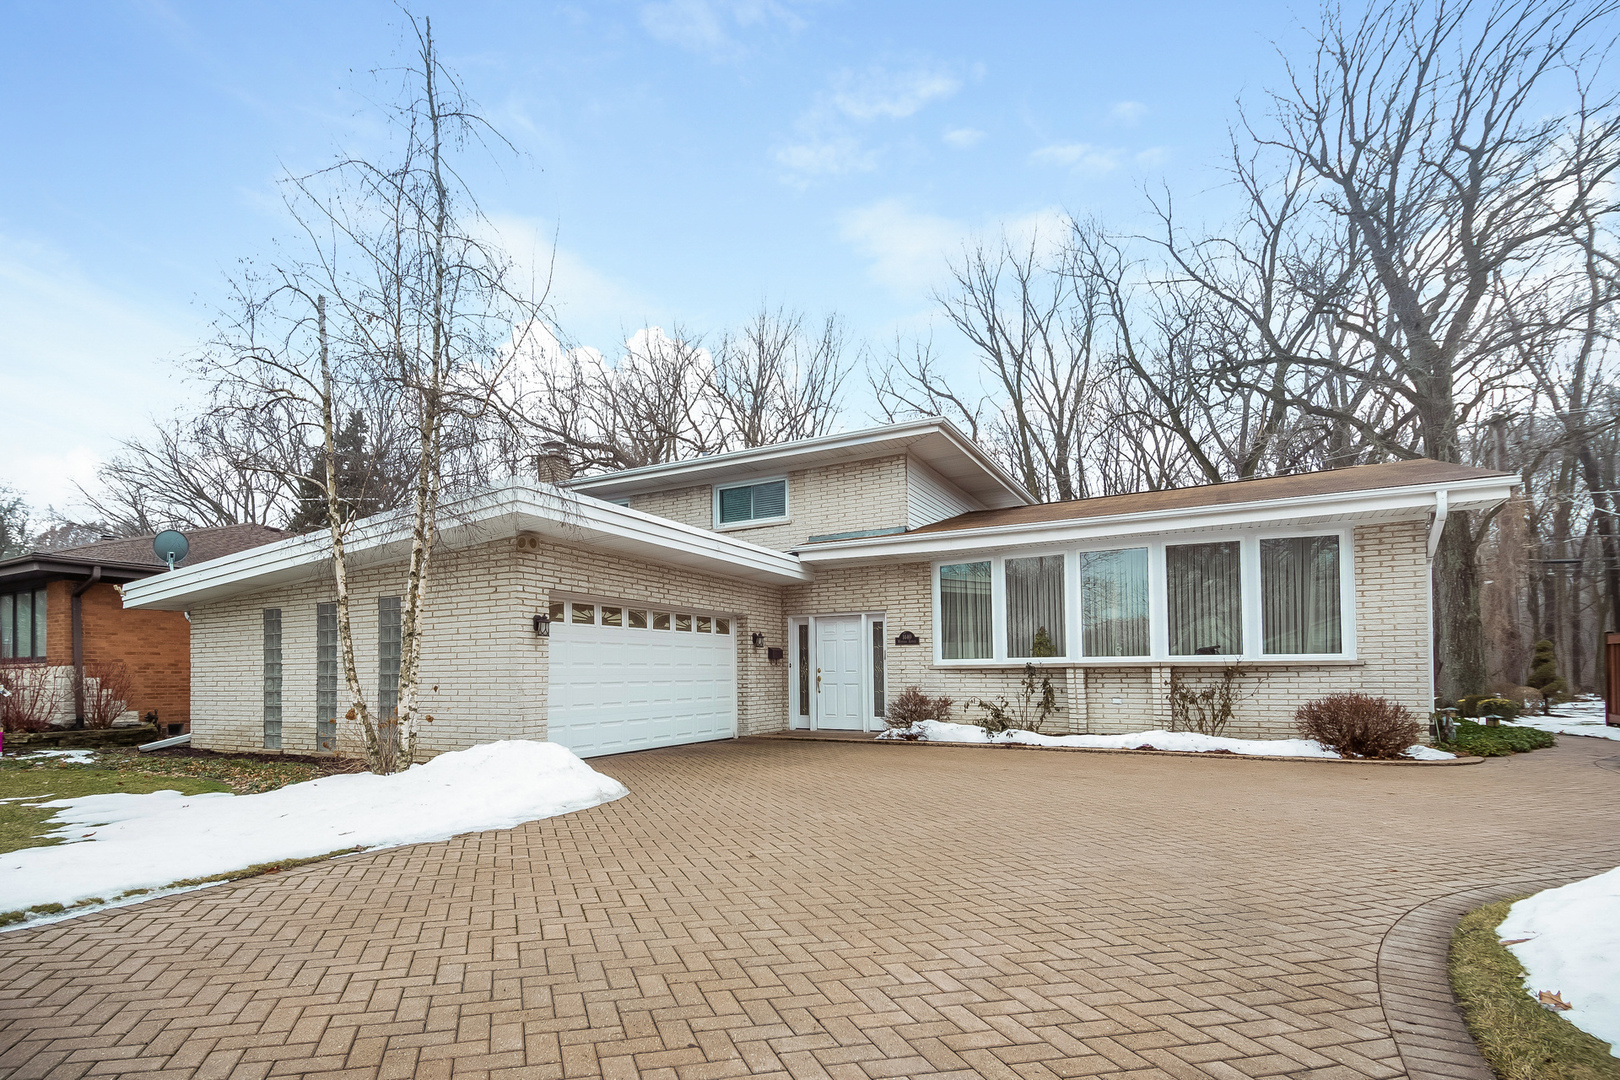 1440 South Western Avenue, Park Ridge in Cook County, IL 60068 Home for Sale